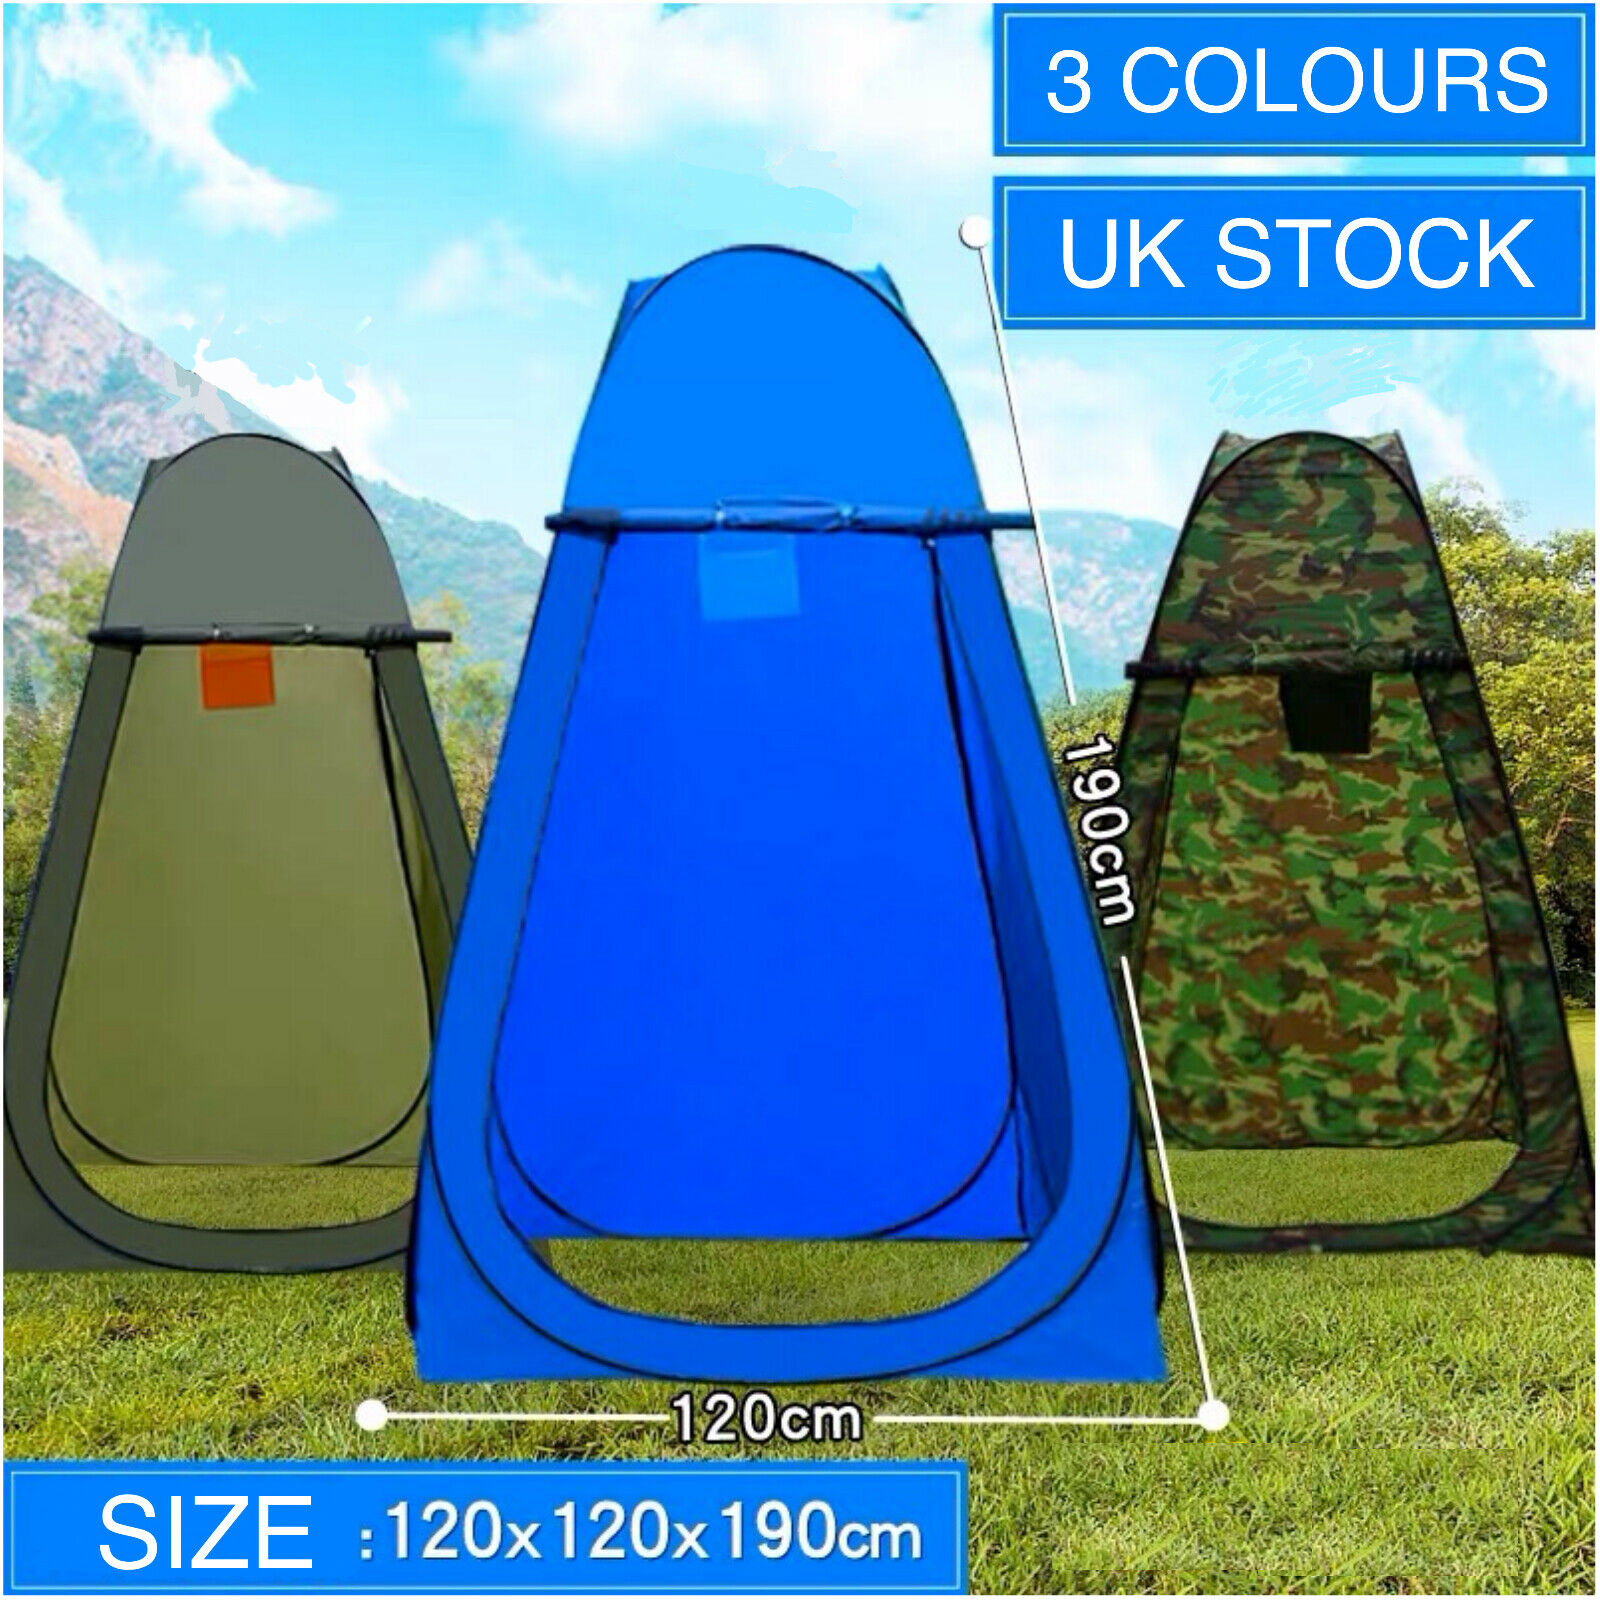 Details about Portable Pop Up Tent Privacy Changing Room Outdoor Toilet Shower Changing Tent